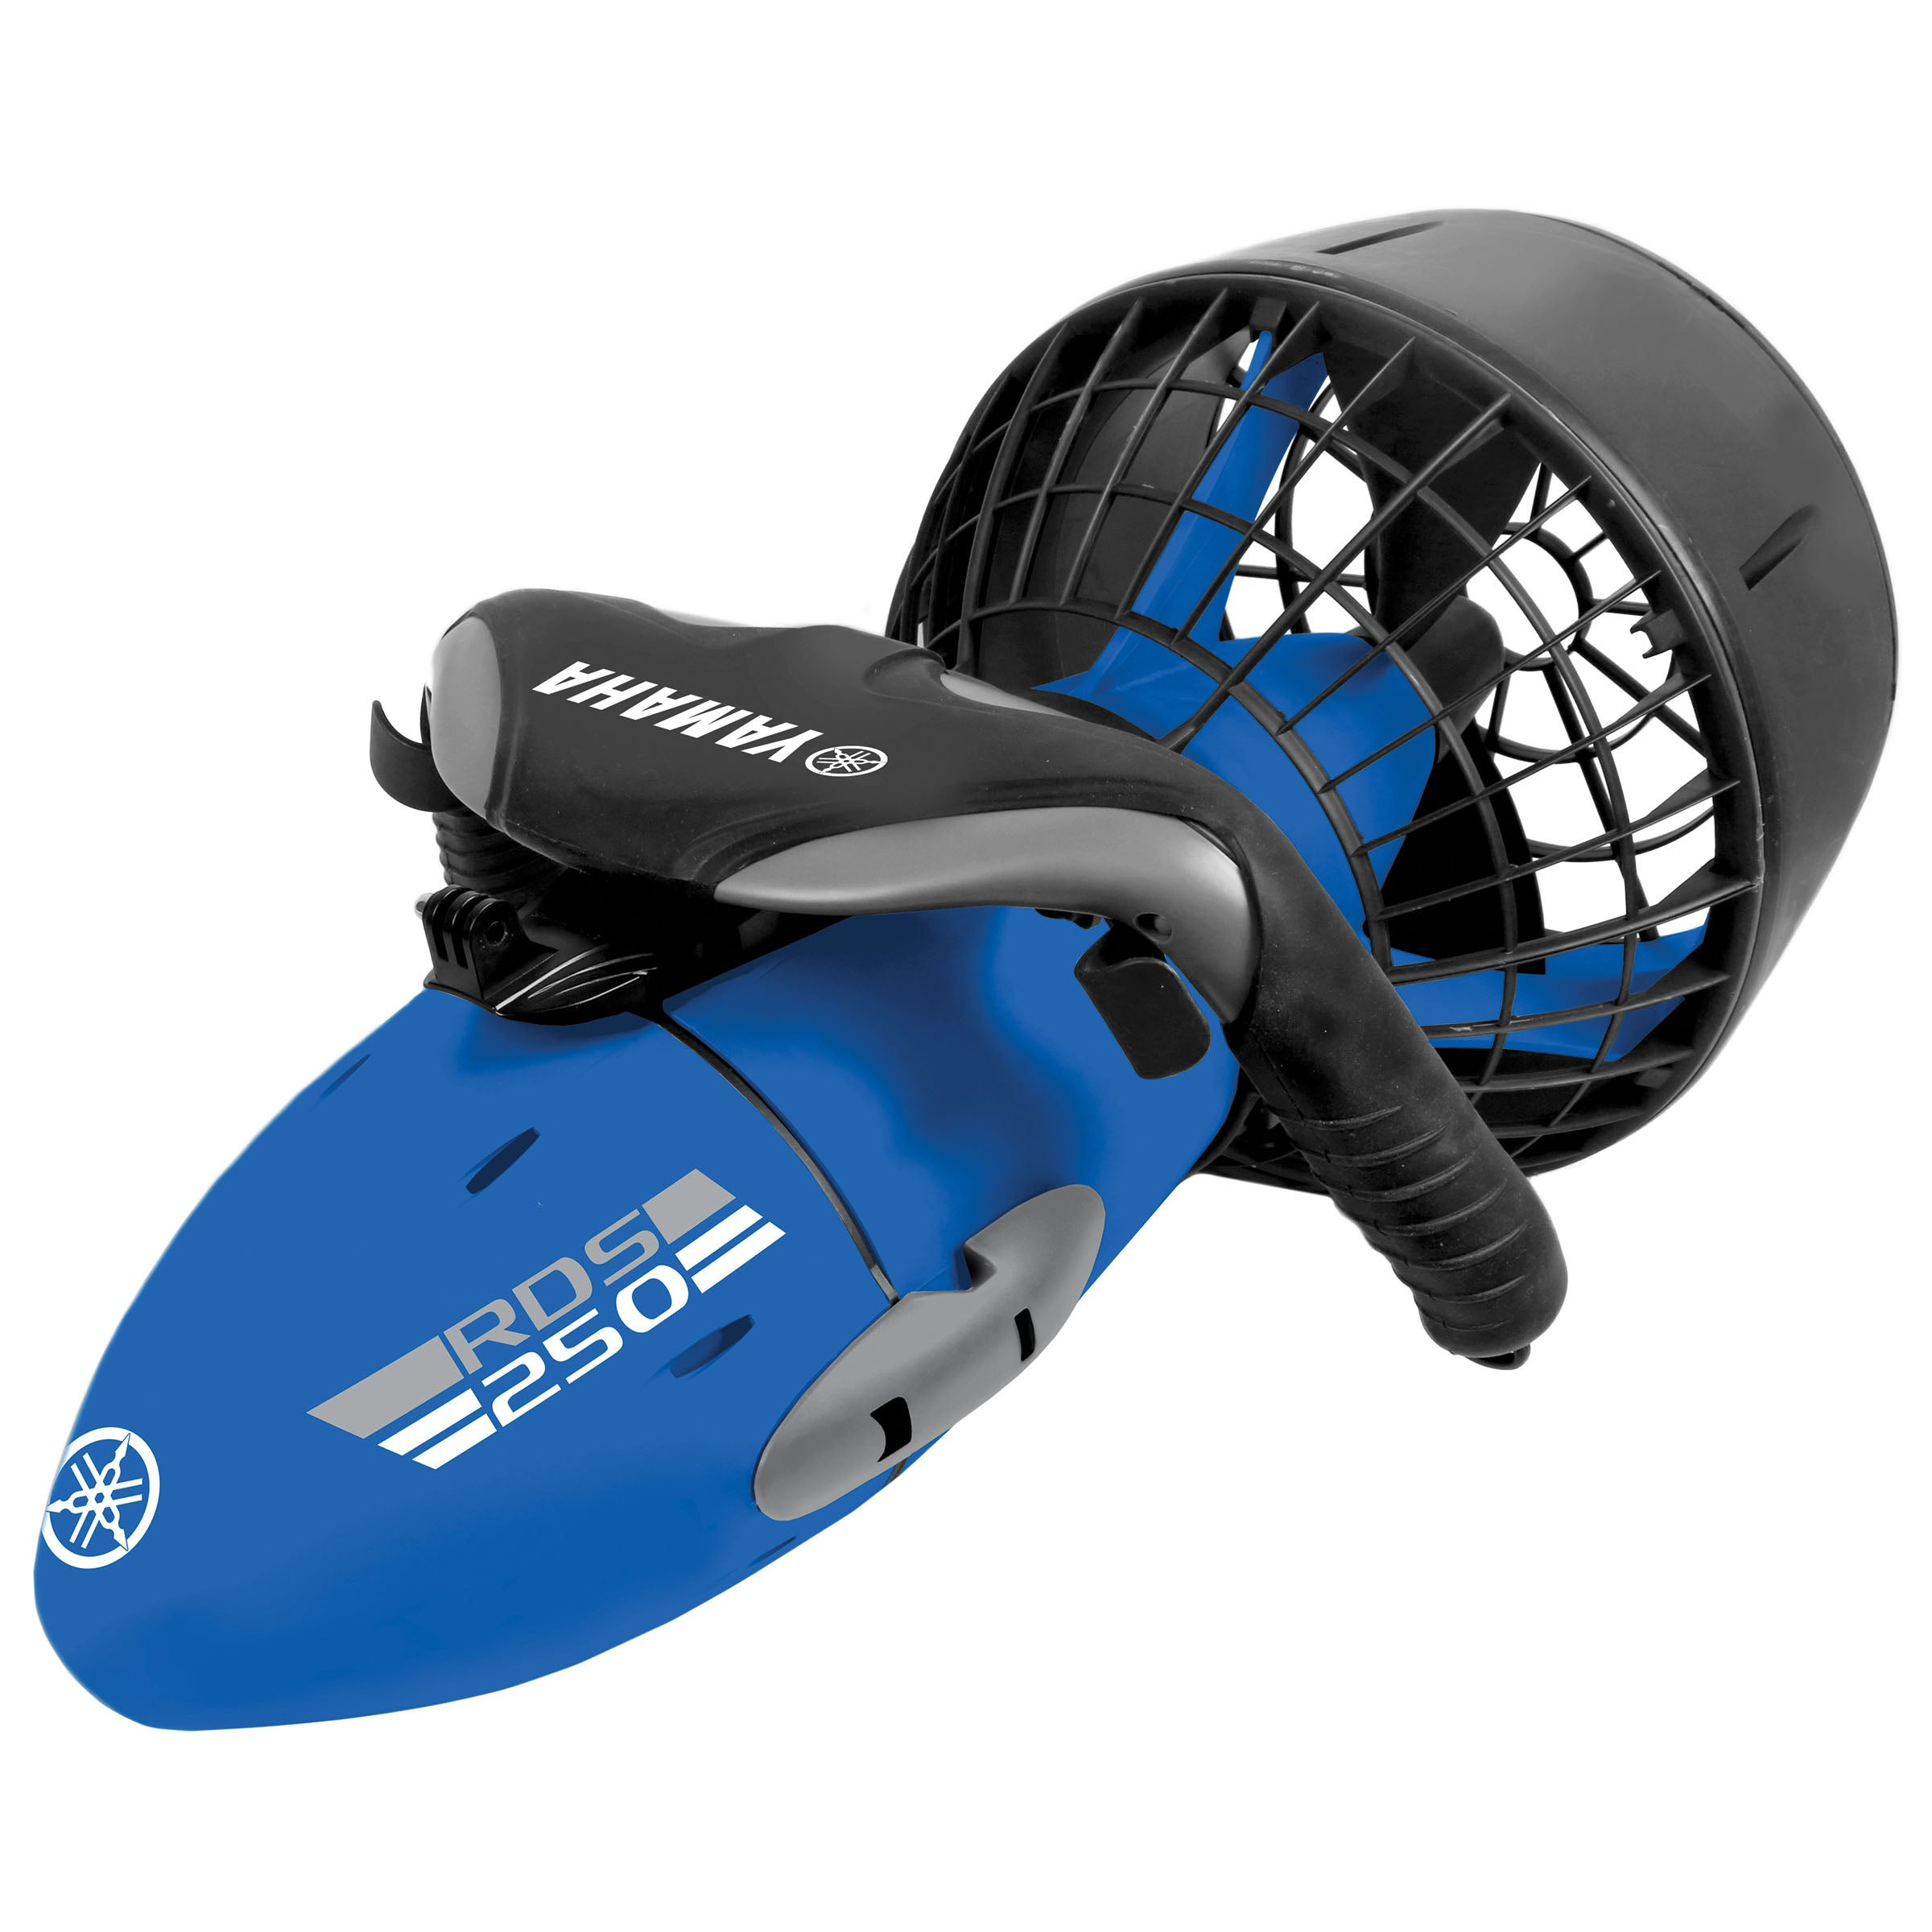 Recreational Dive Series RDS250